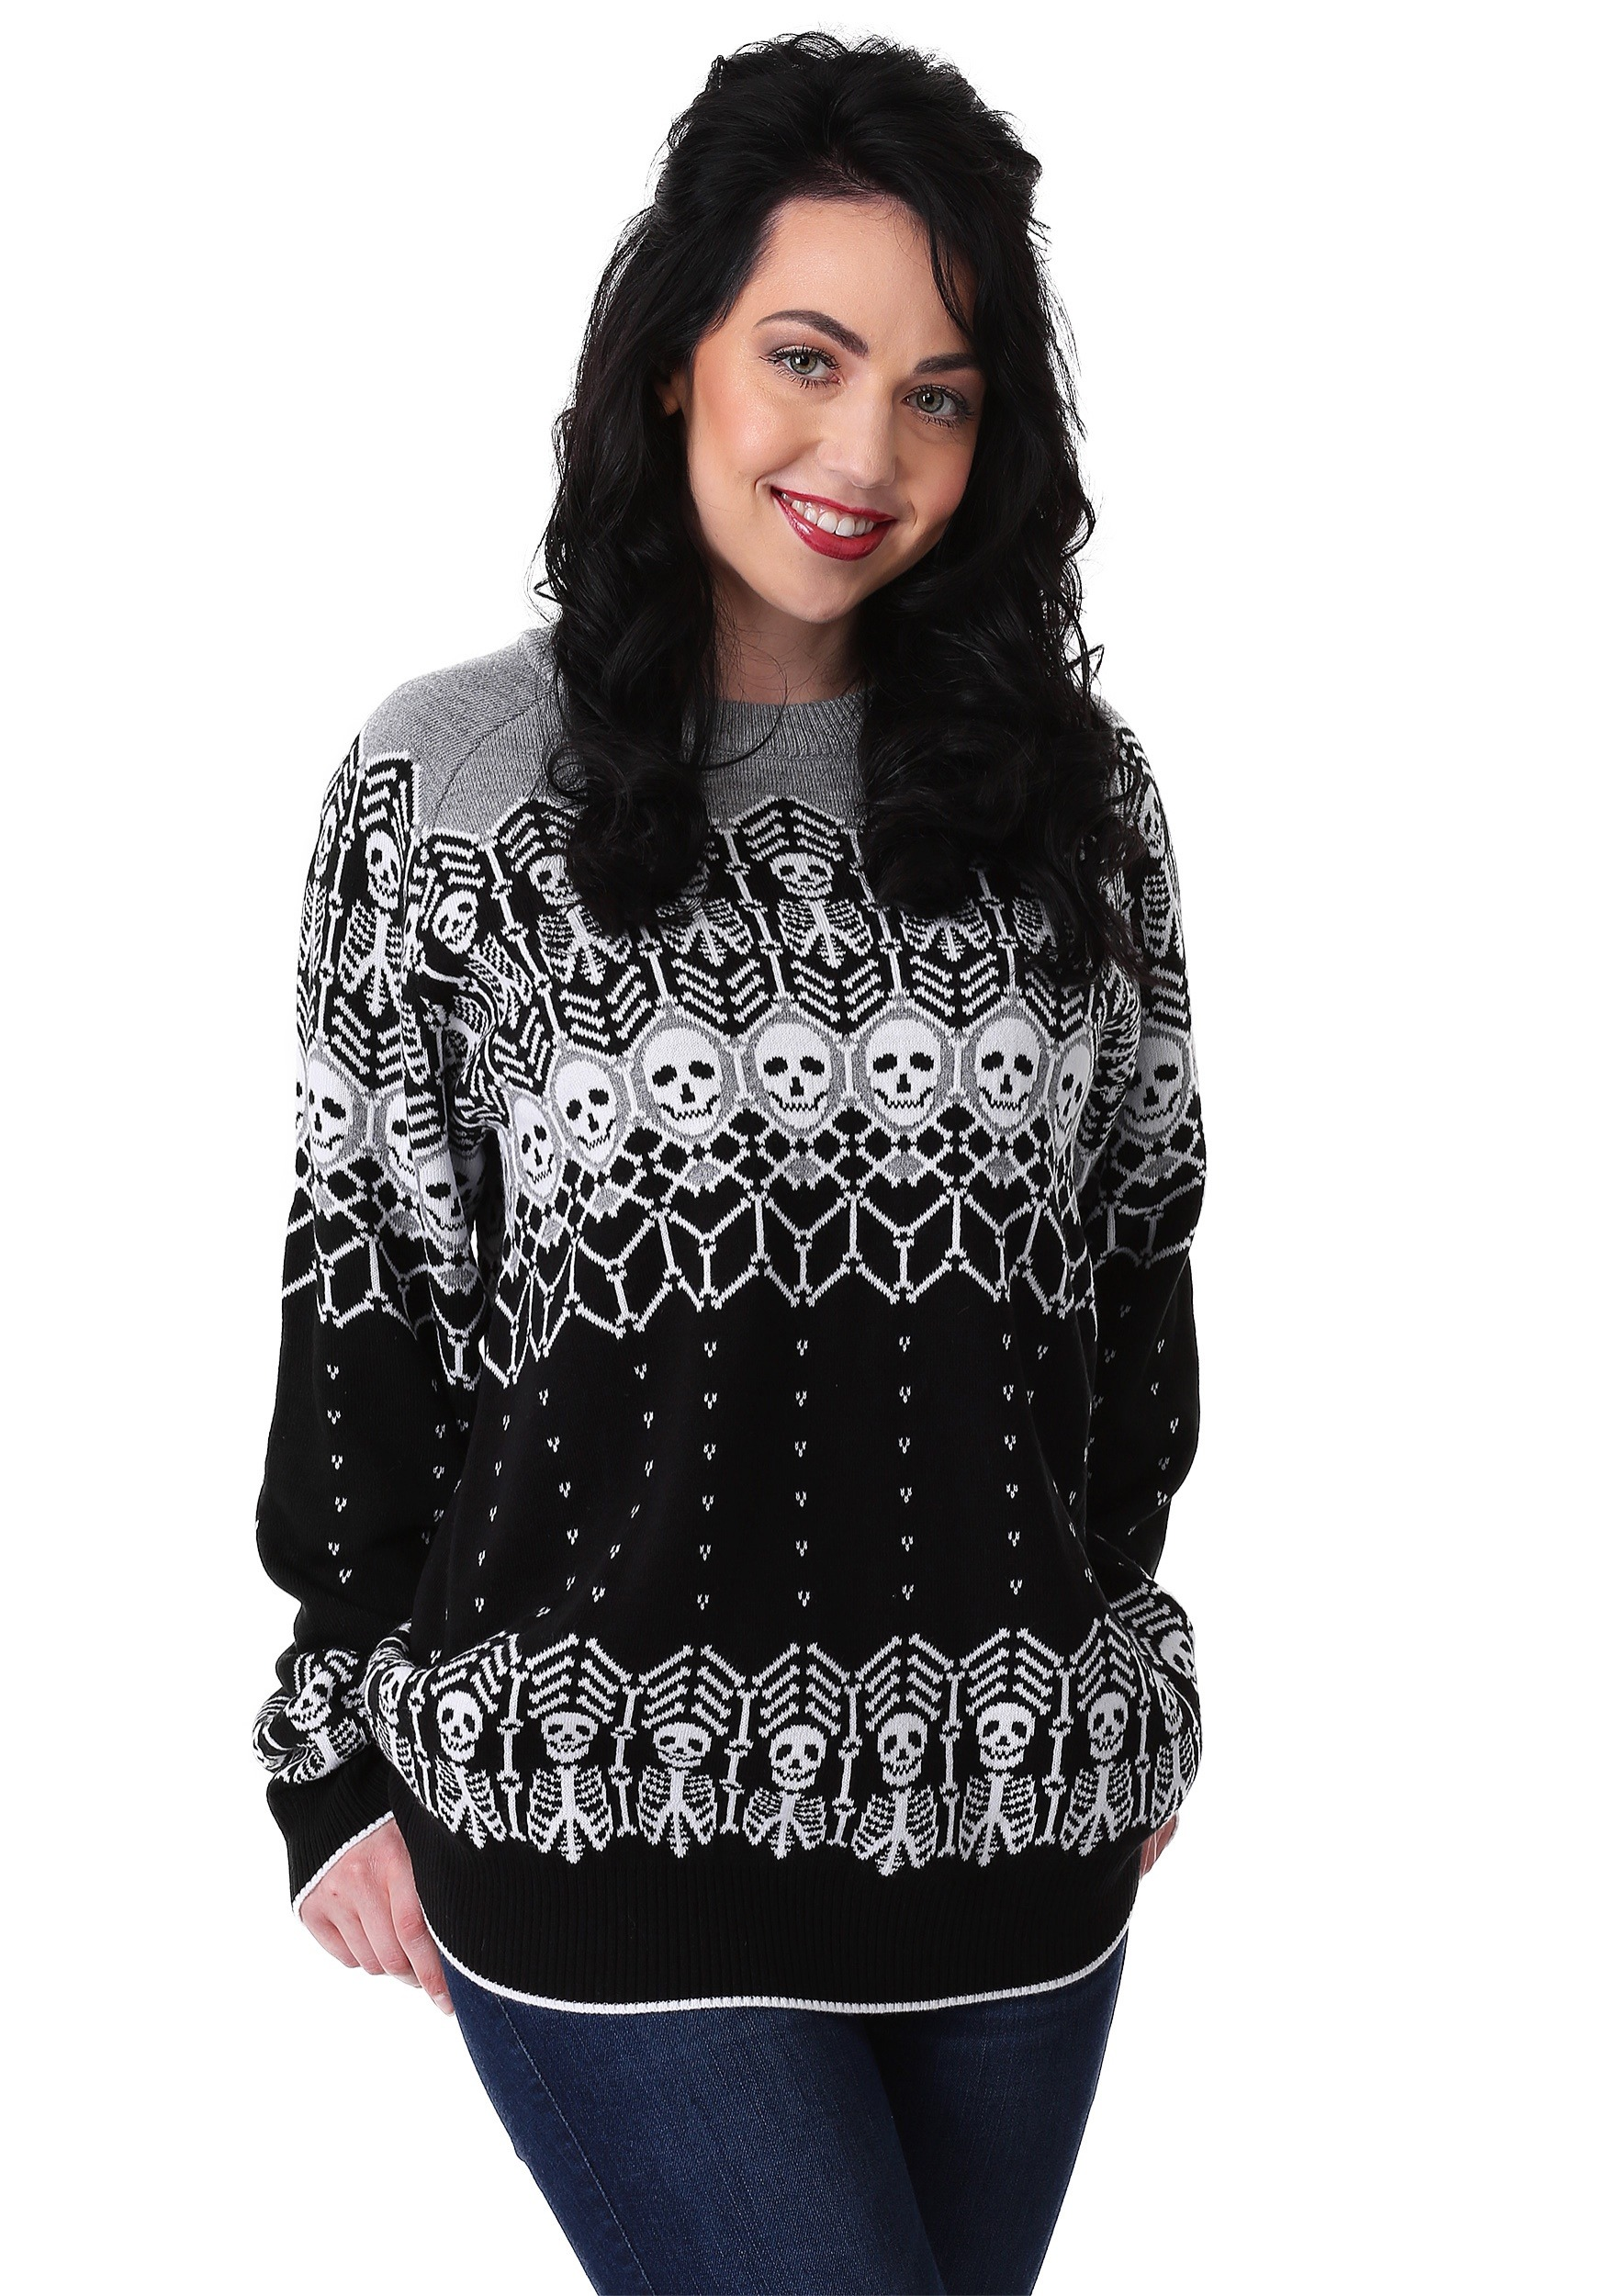 Adult Black and White Skeleton Halloween Sweater